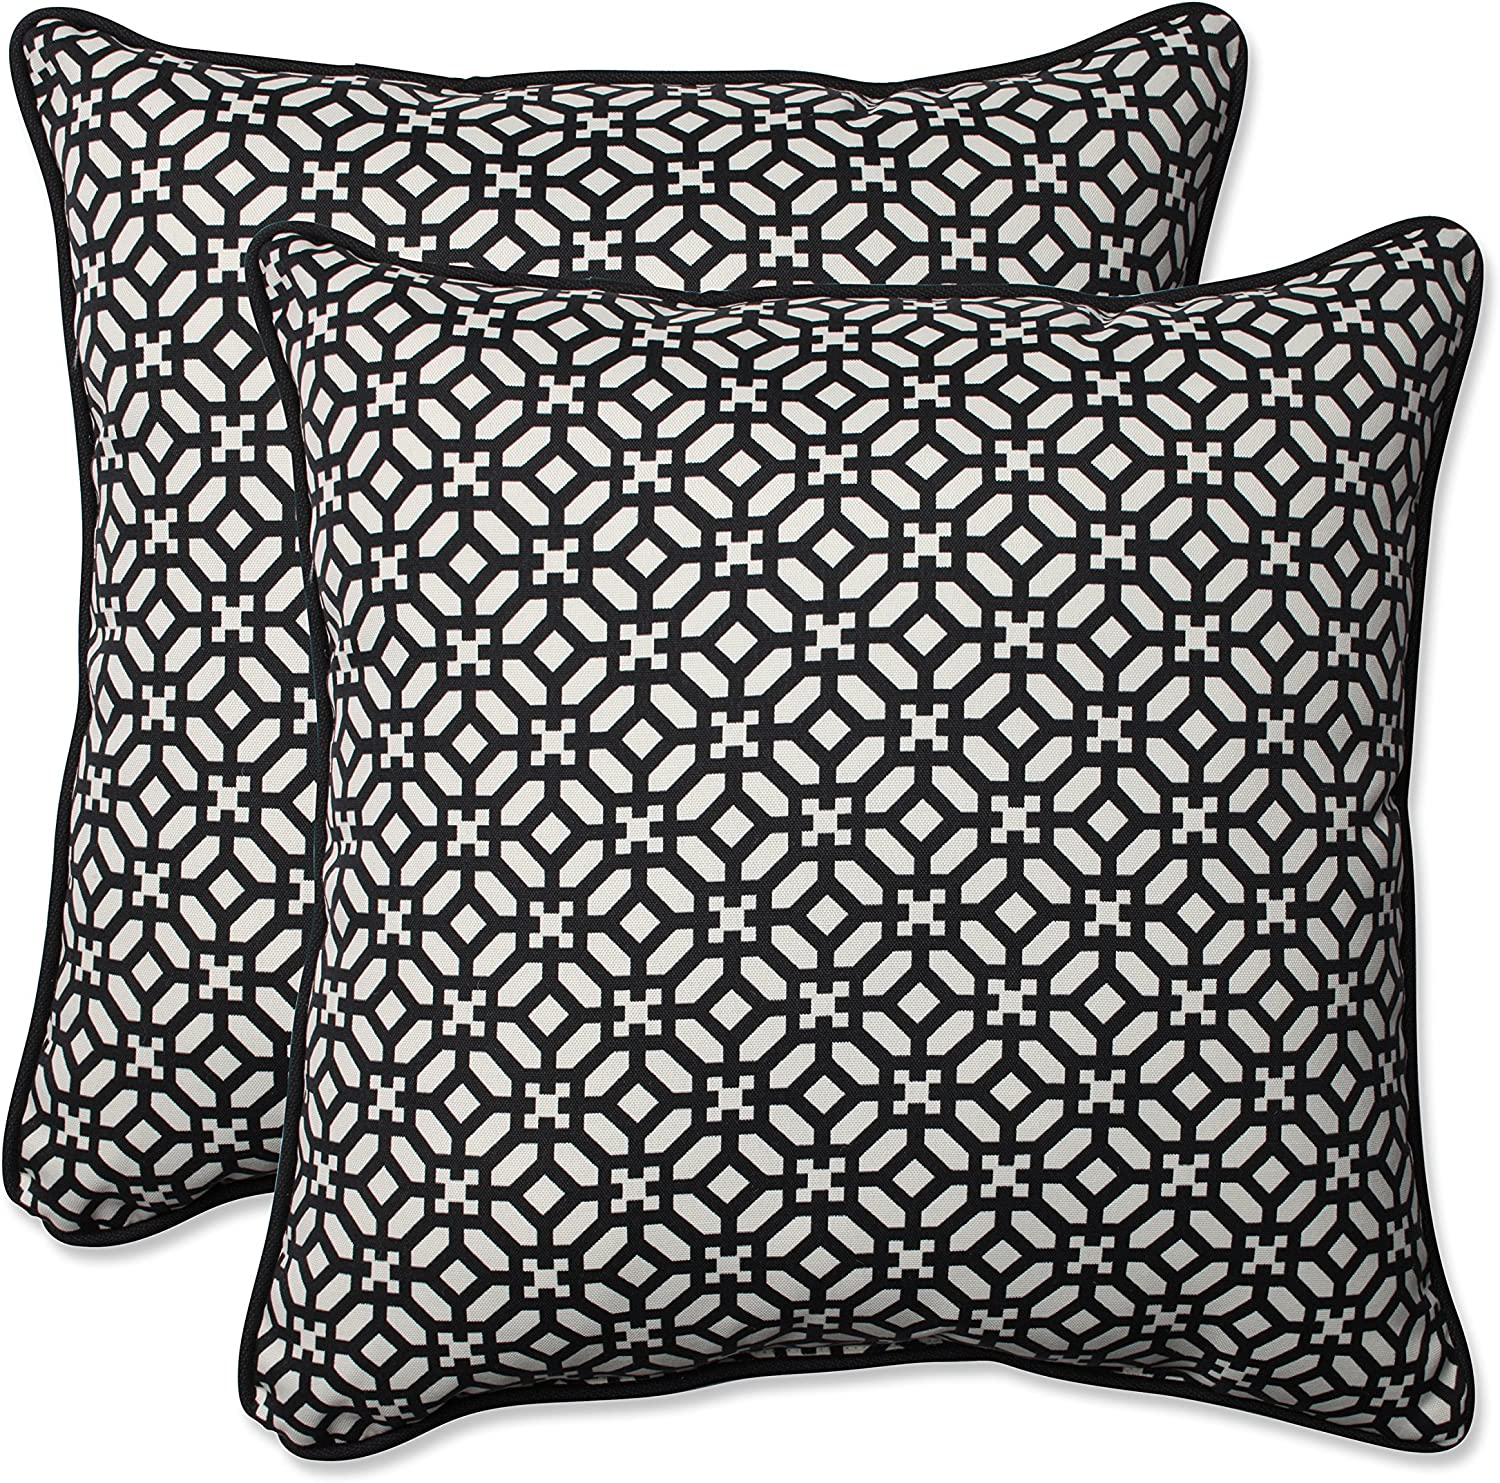 Pillow Perfect Outdoor Indoor in The Frame Ebony Throw Pillow (Set of 2), 18.5